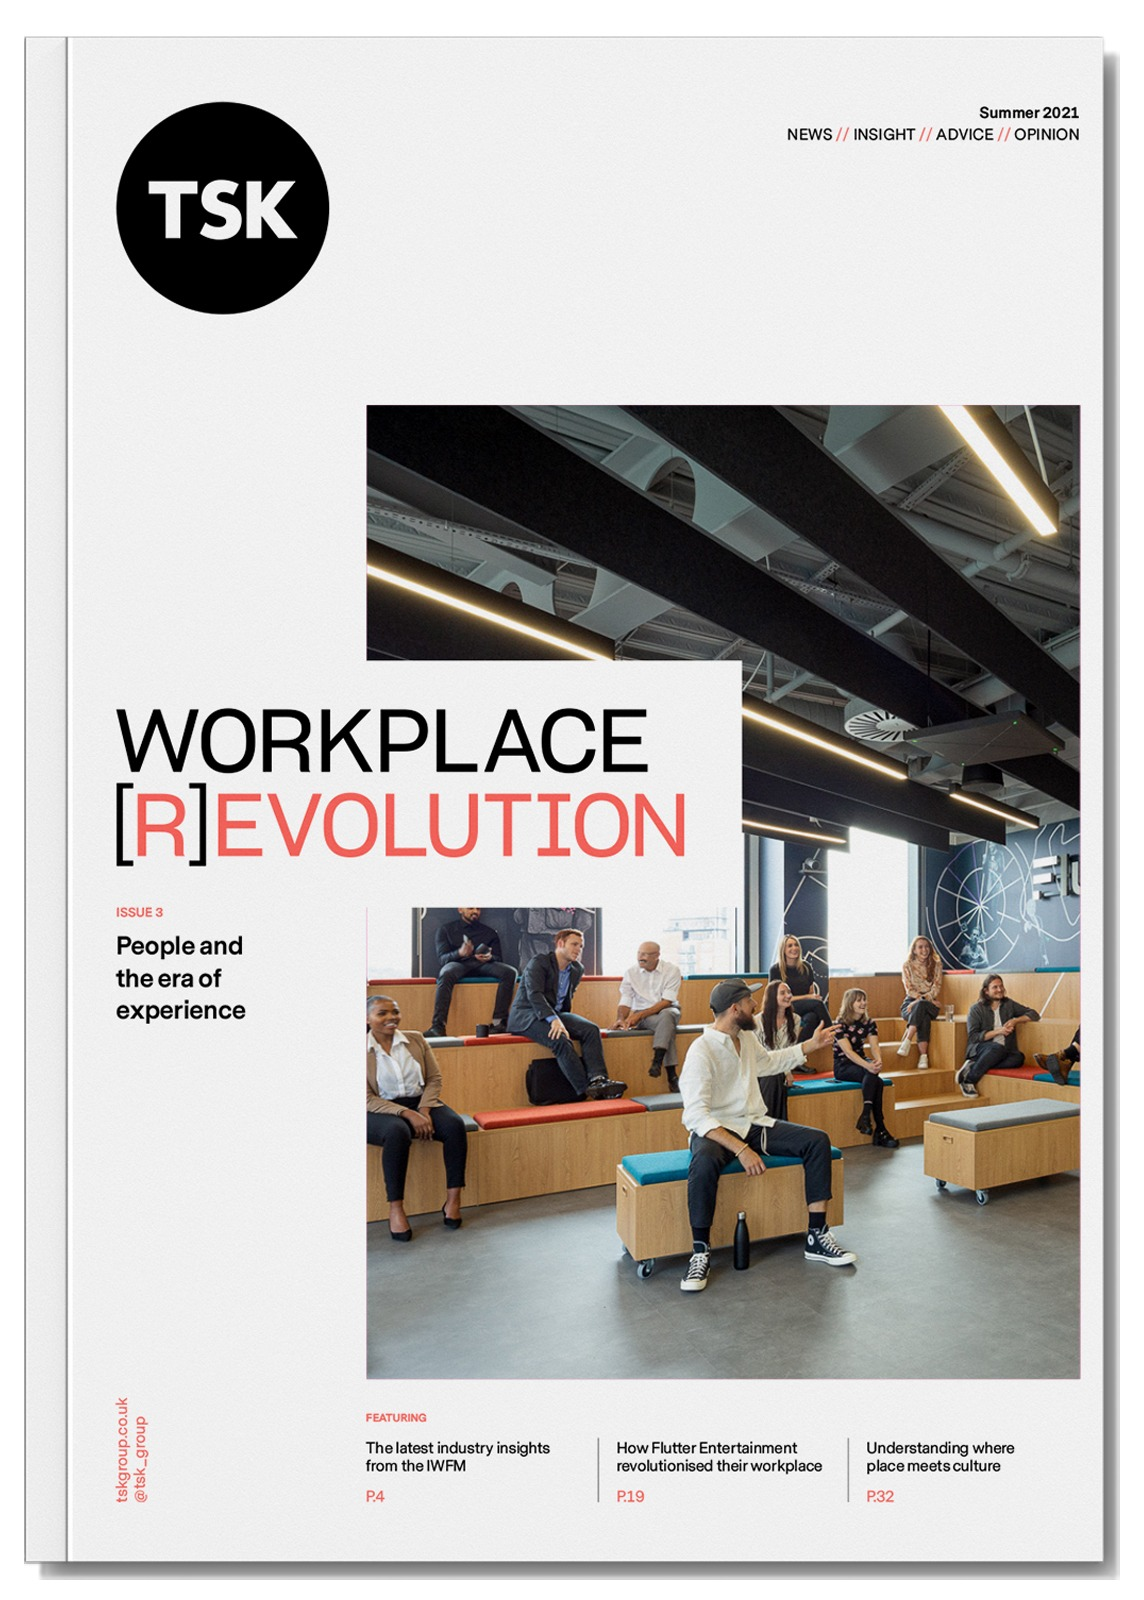 Workplace [R]Evolution: Issue 3